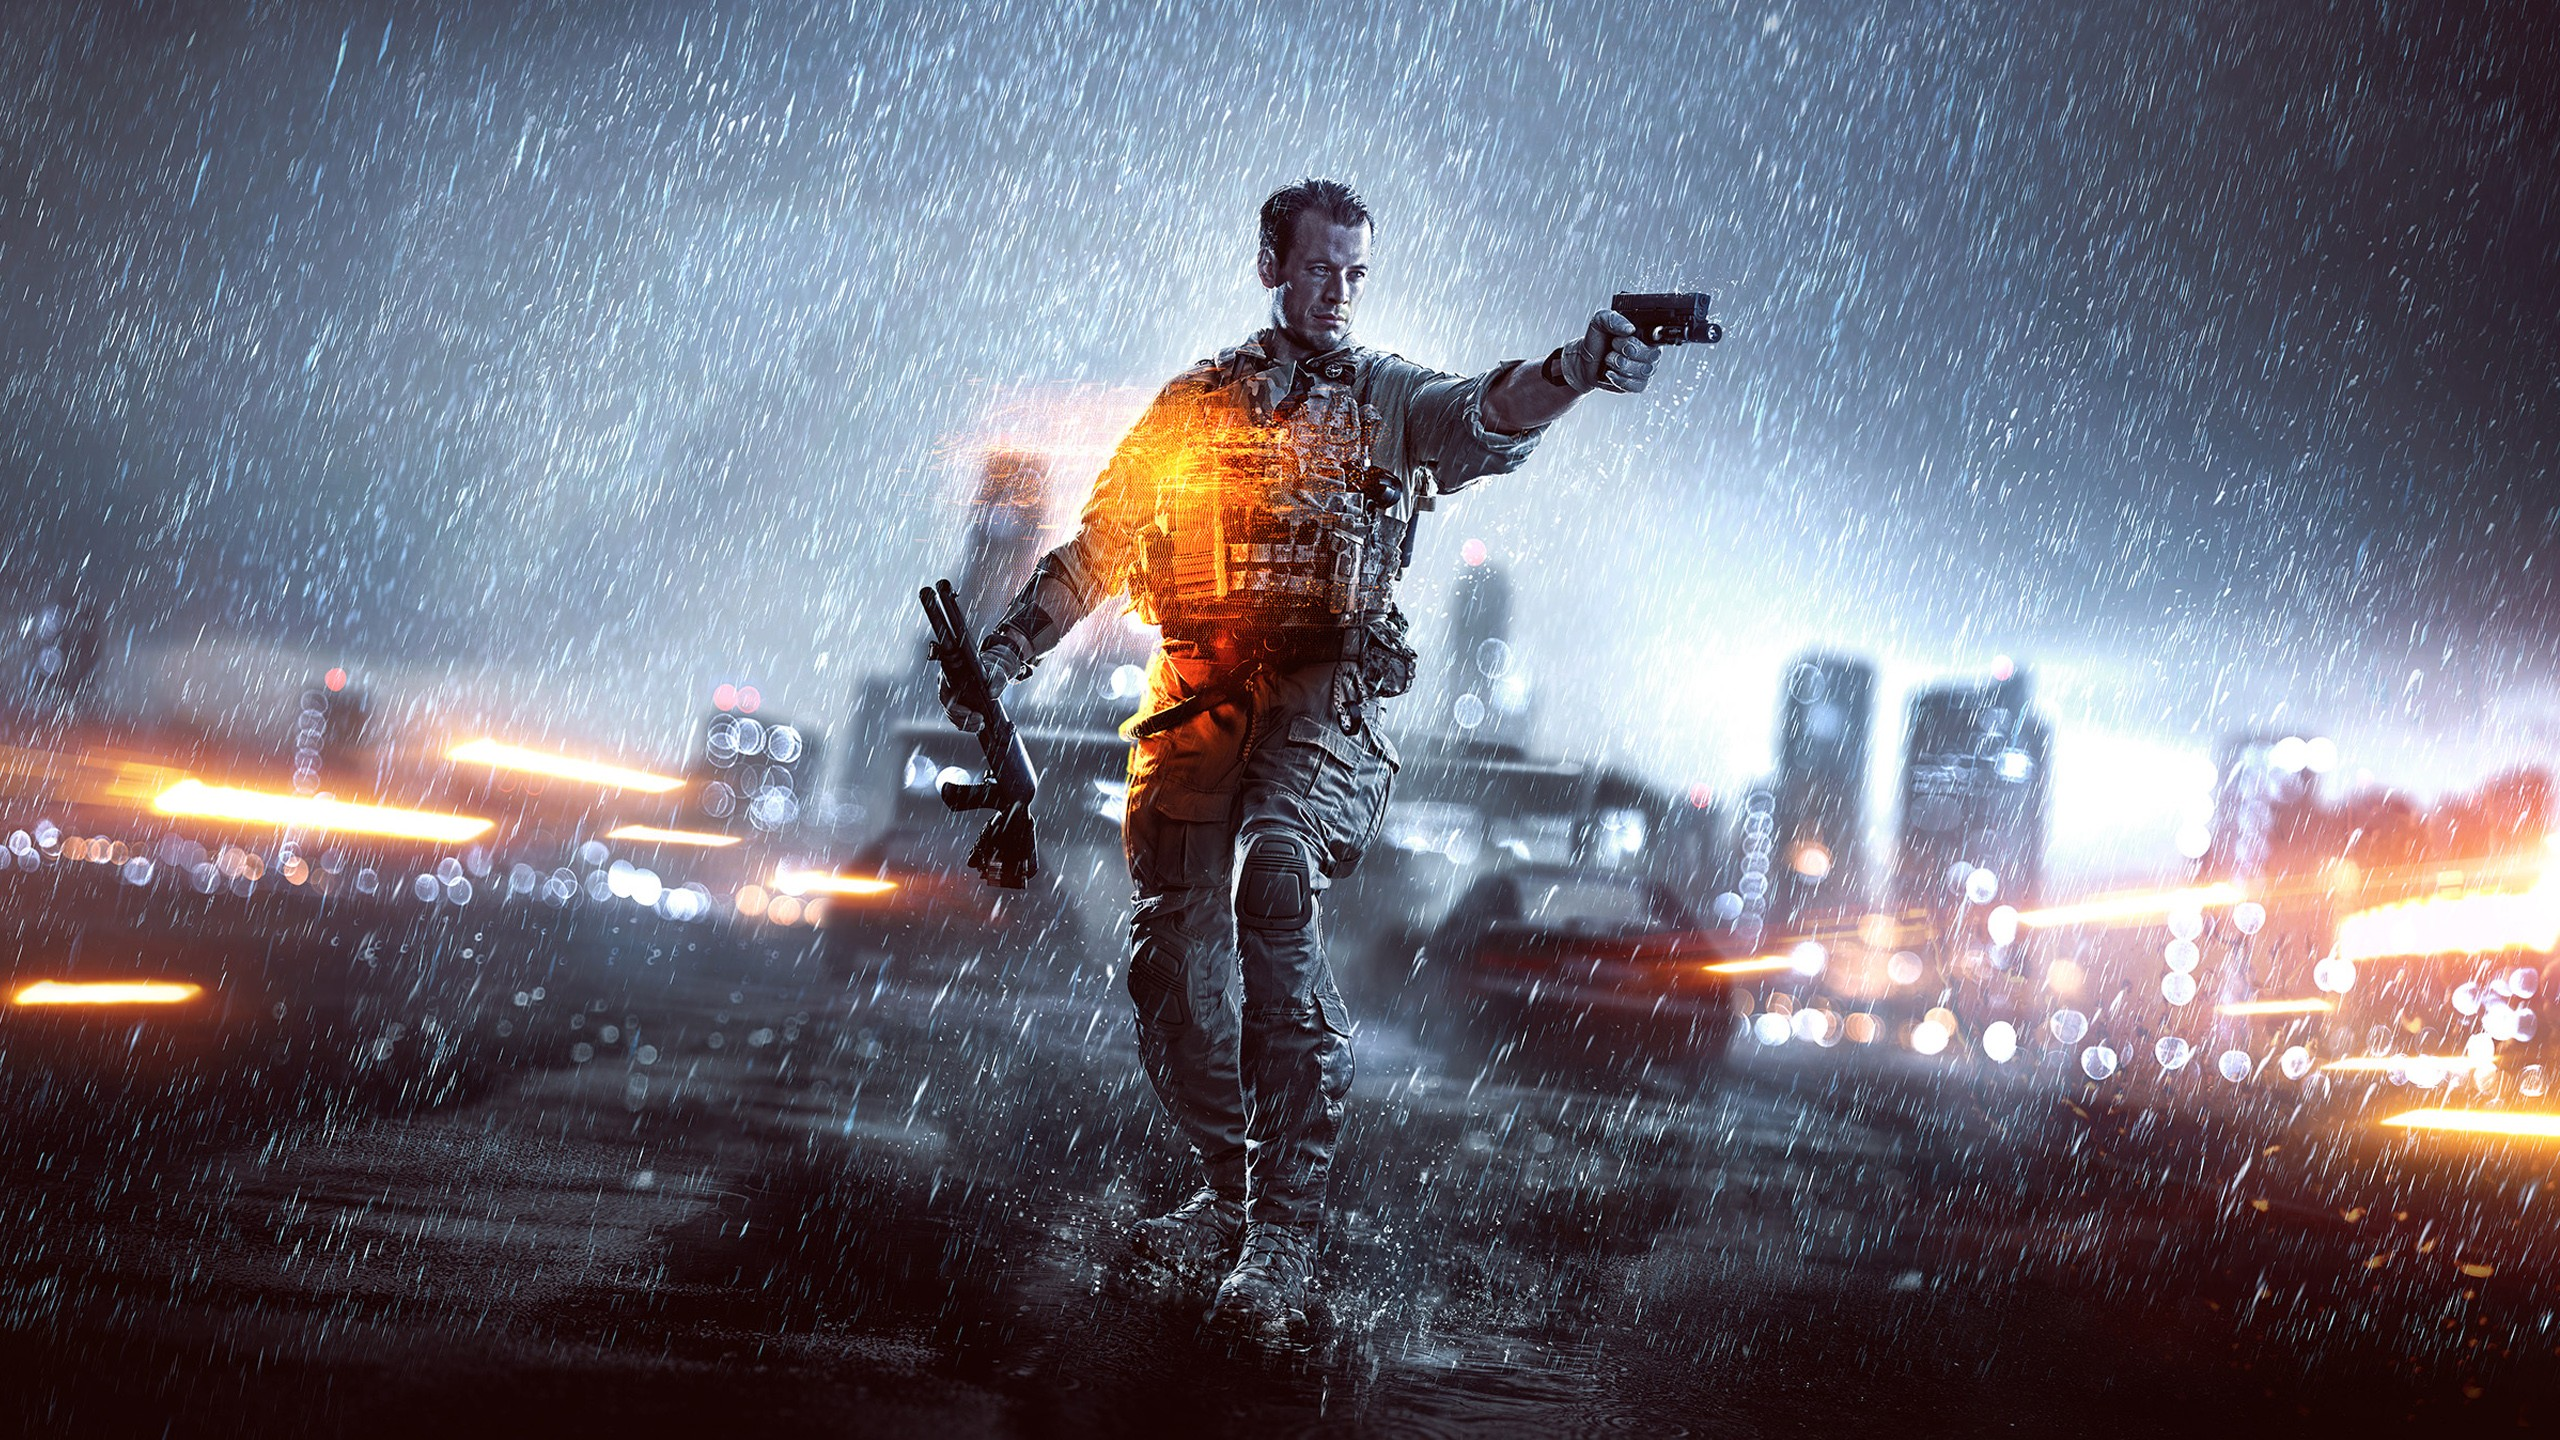 pics photos battlefield 4 games hd wallpaper battlefield